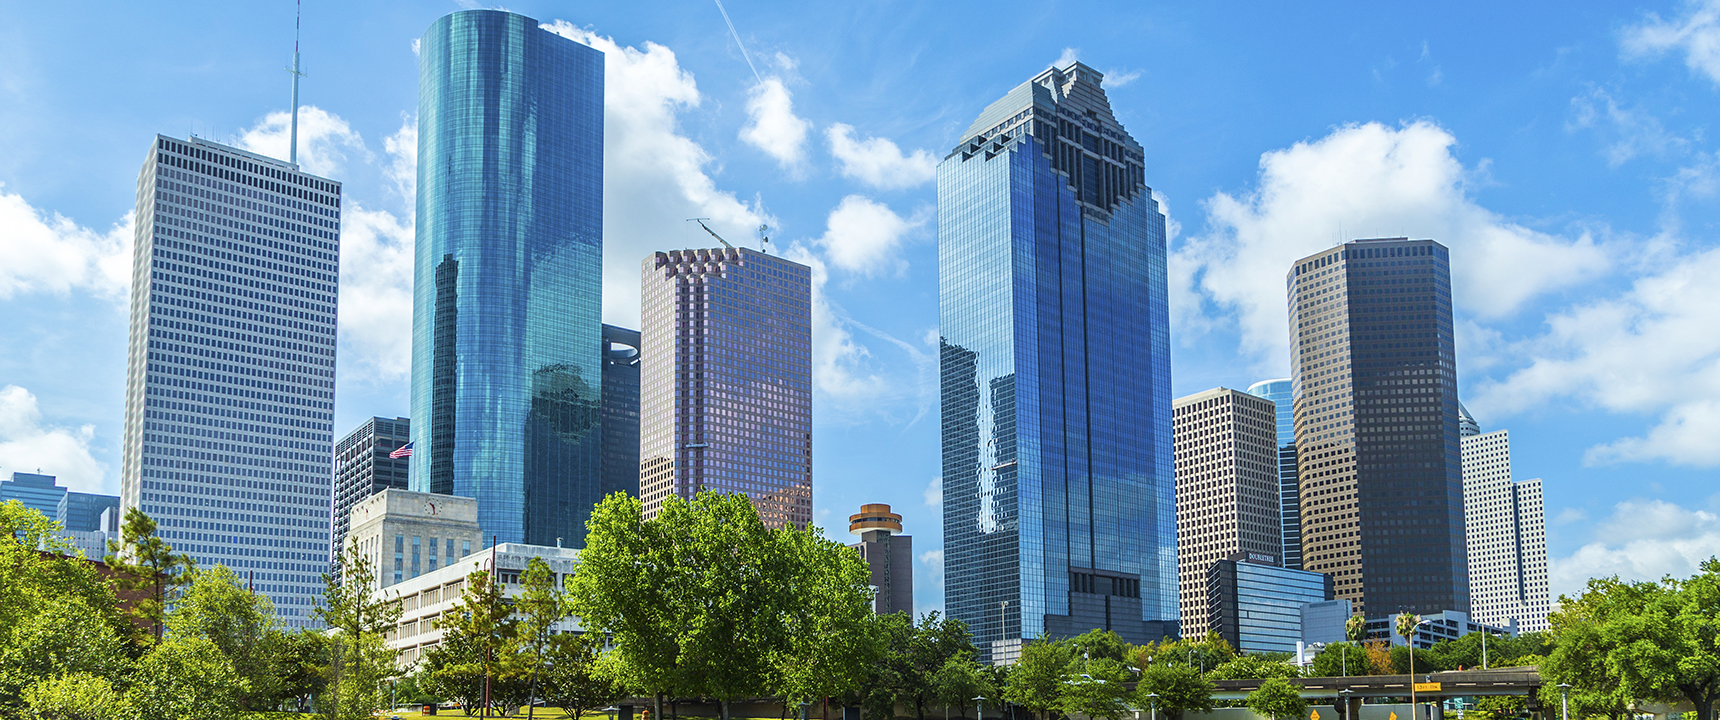 Photo of Houston, Texas where the Houston Business Center is located.